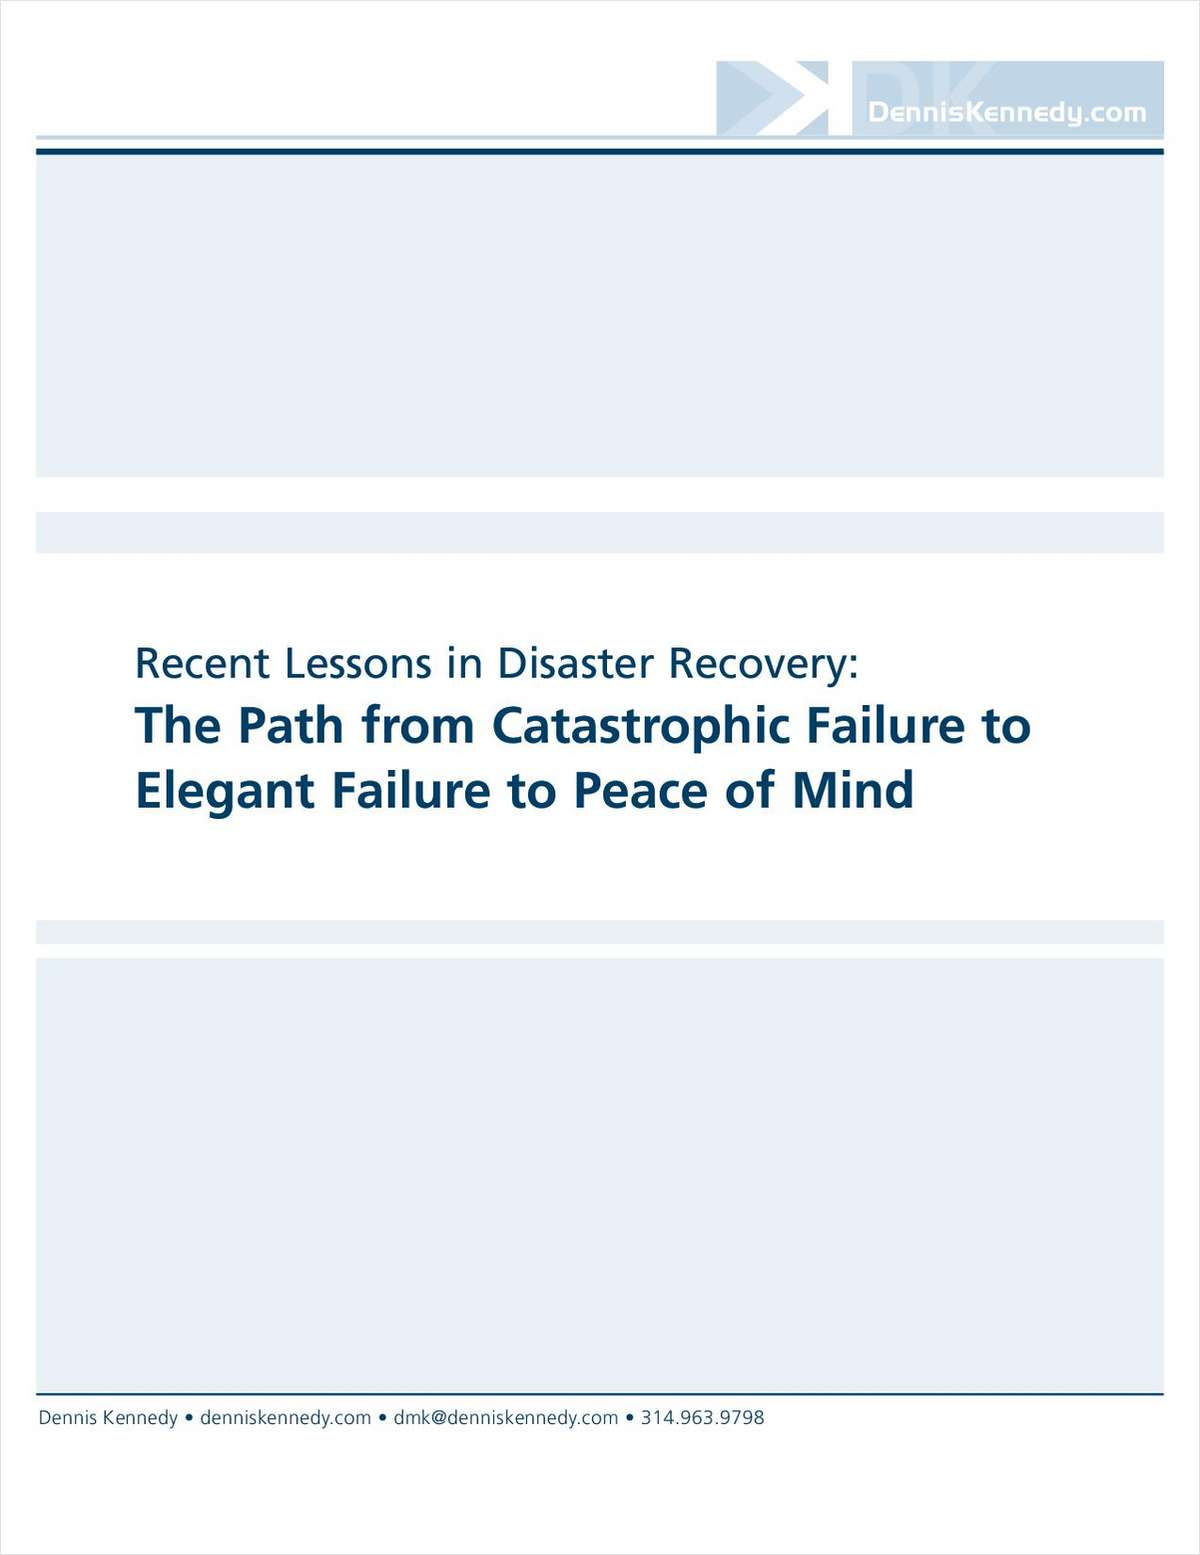 Recent Lessons in Disaster Recovery: The Path from Catastrophic Failure to Elegant Failure to Peace of Mind